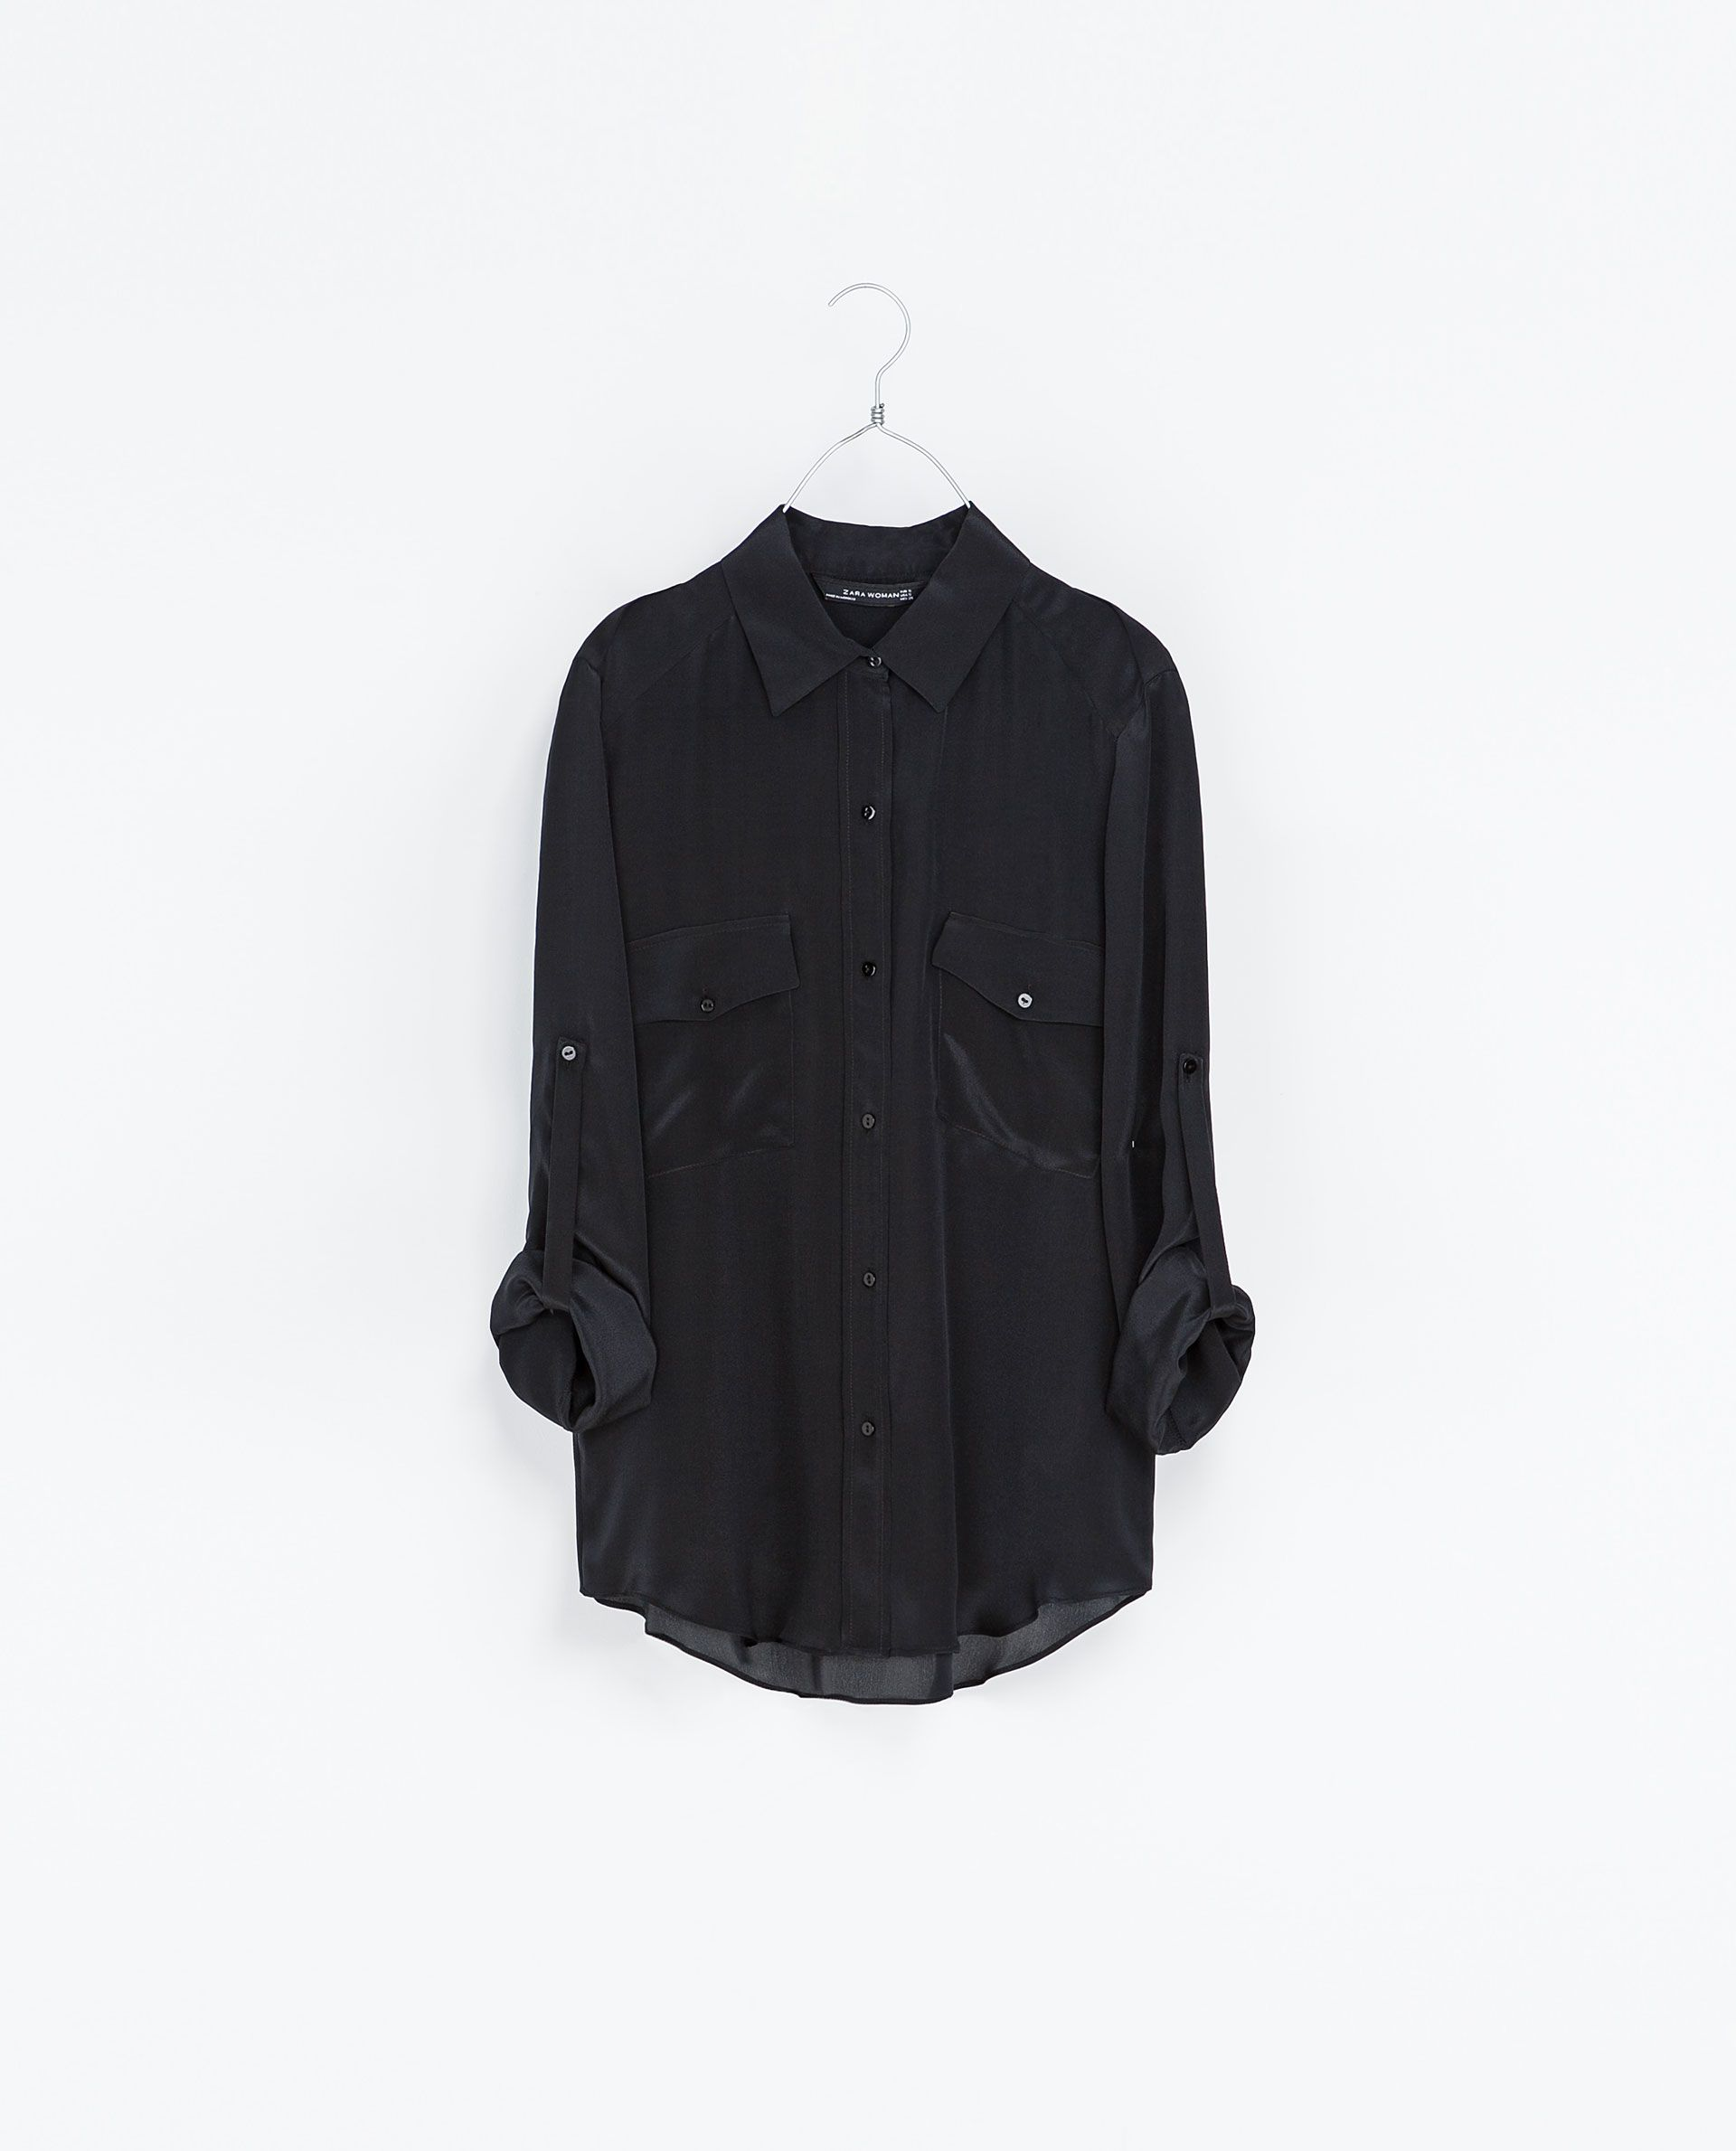 4890347a31110b Zara Silk Shirt With Pocket - BCD Tofu House